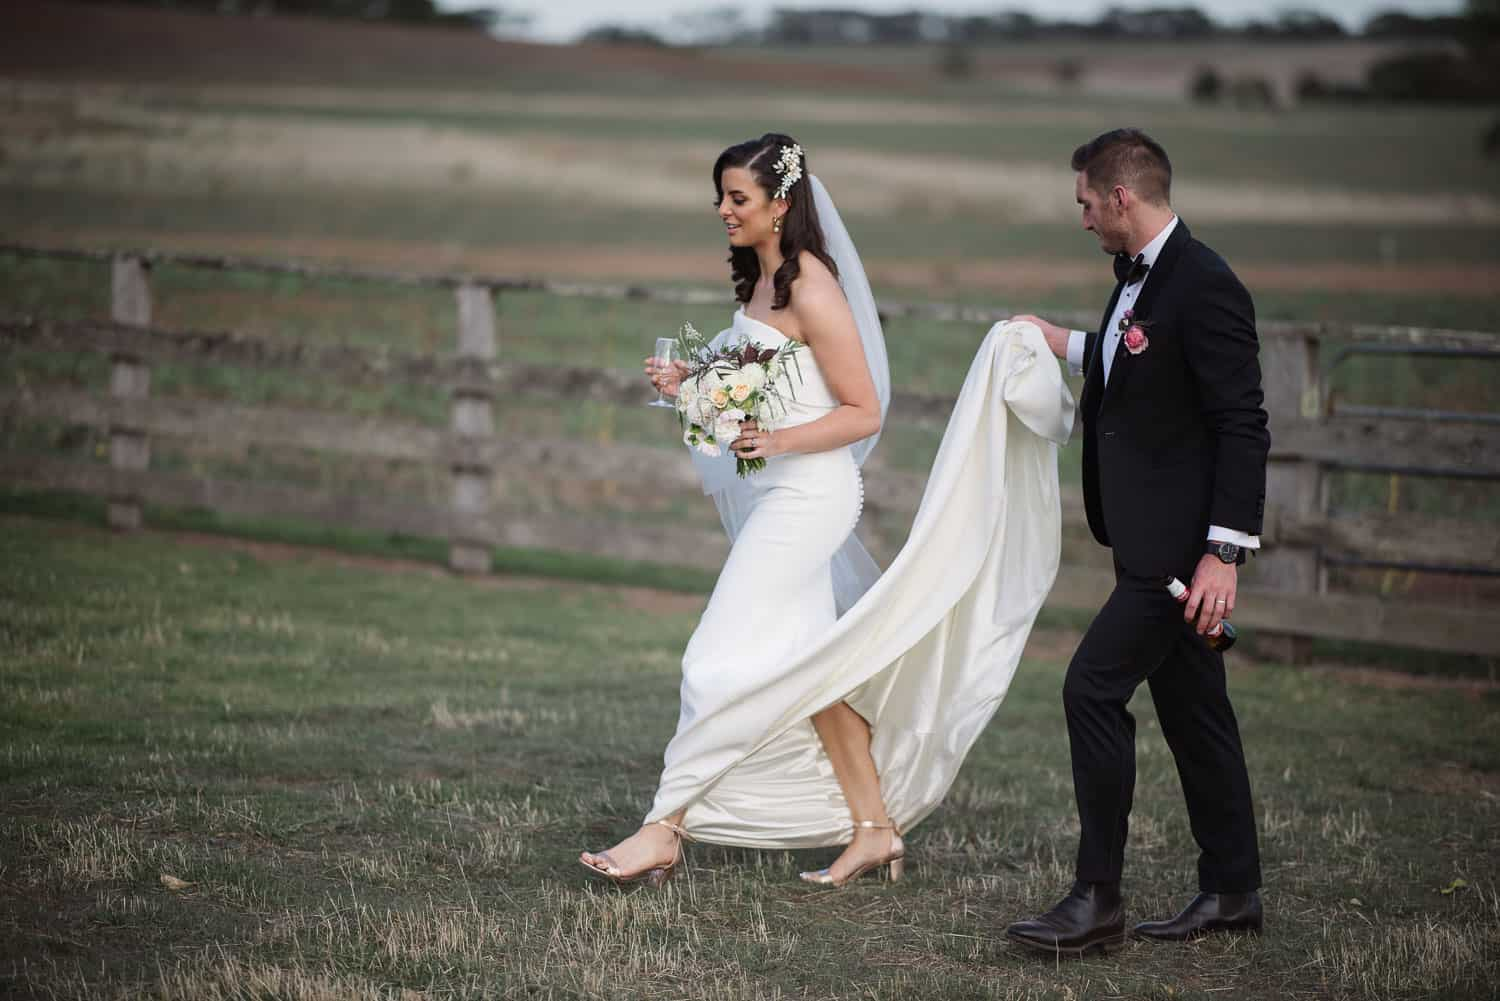 Couple walking after wedding in country victoria